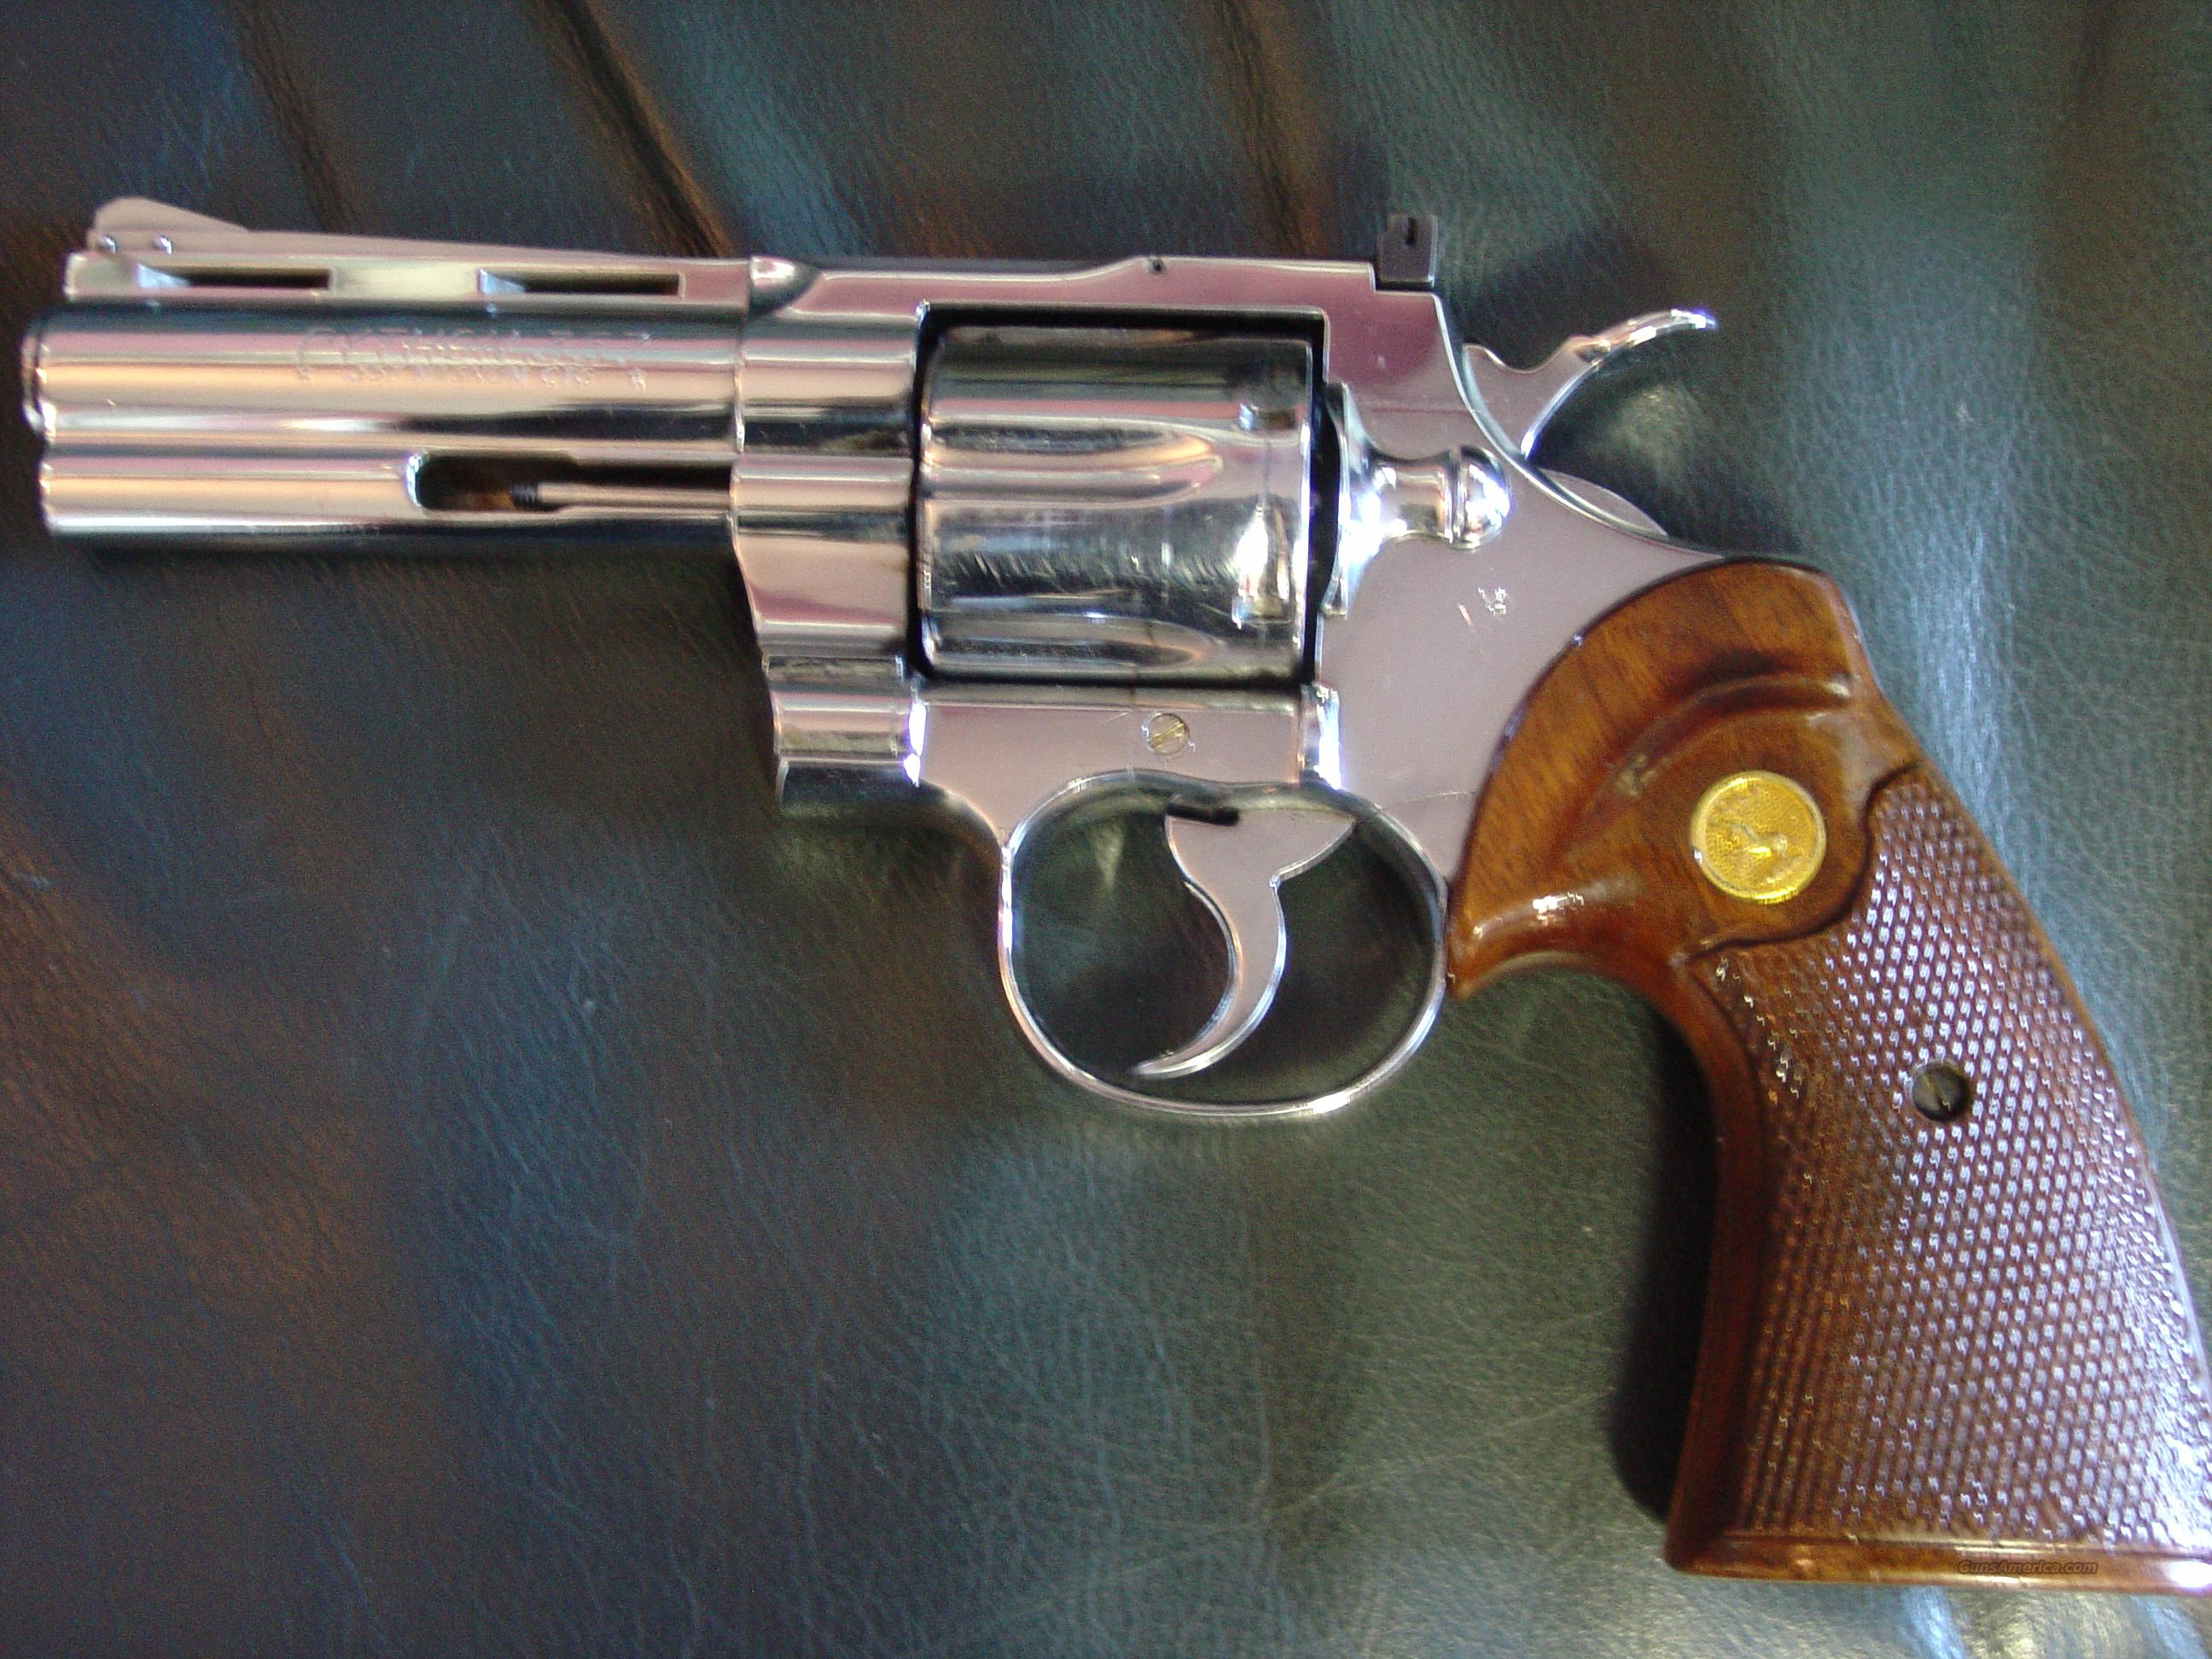 "Colt Python 4"" nickel,357 magnum,1978,adj rear site,wood grips & Hogue rubber,suede zippered case,owners manual,great looking shooter with minor wear   Guns > Pistols > Colt Double Action Revolvers- Modern"